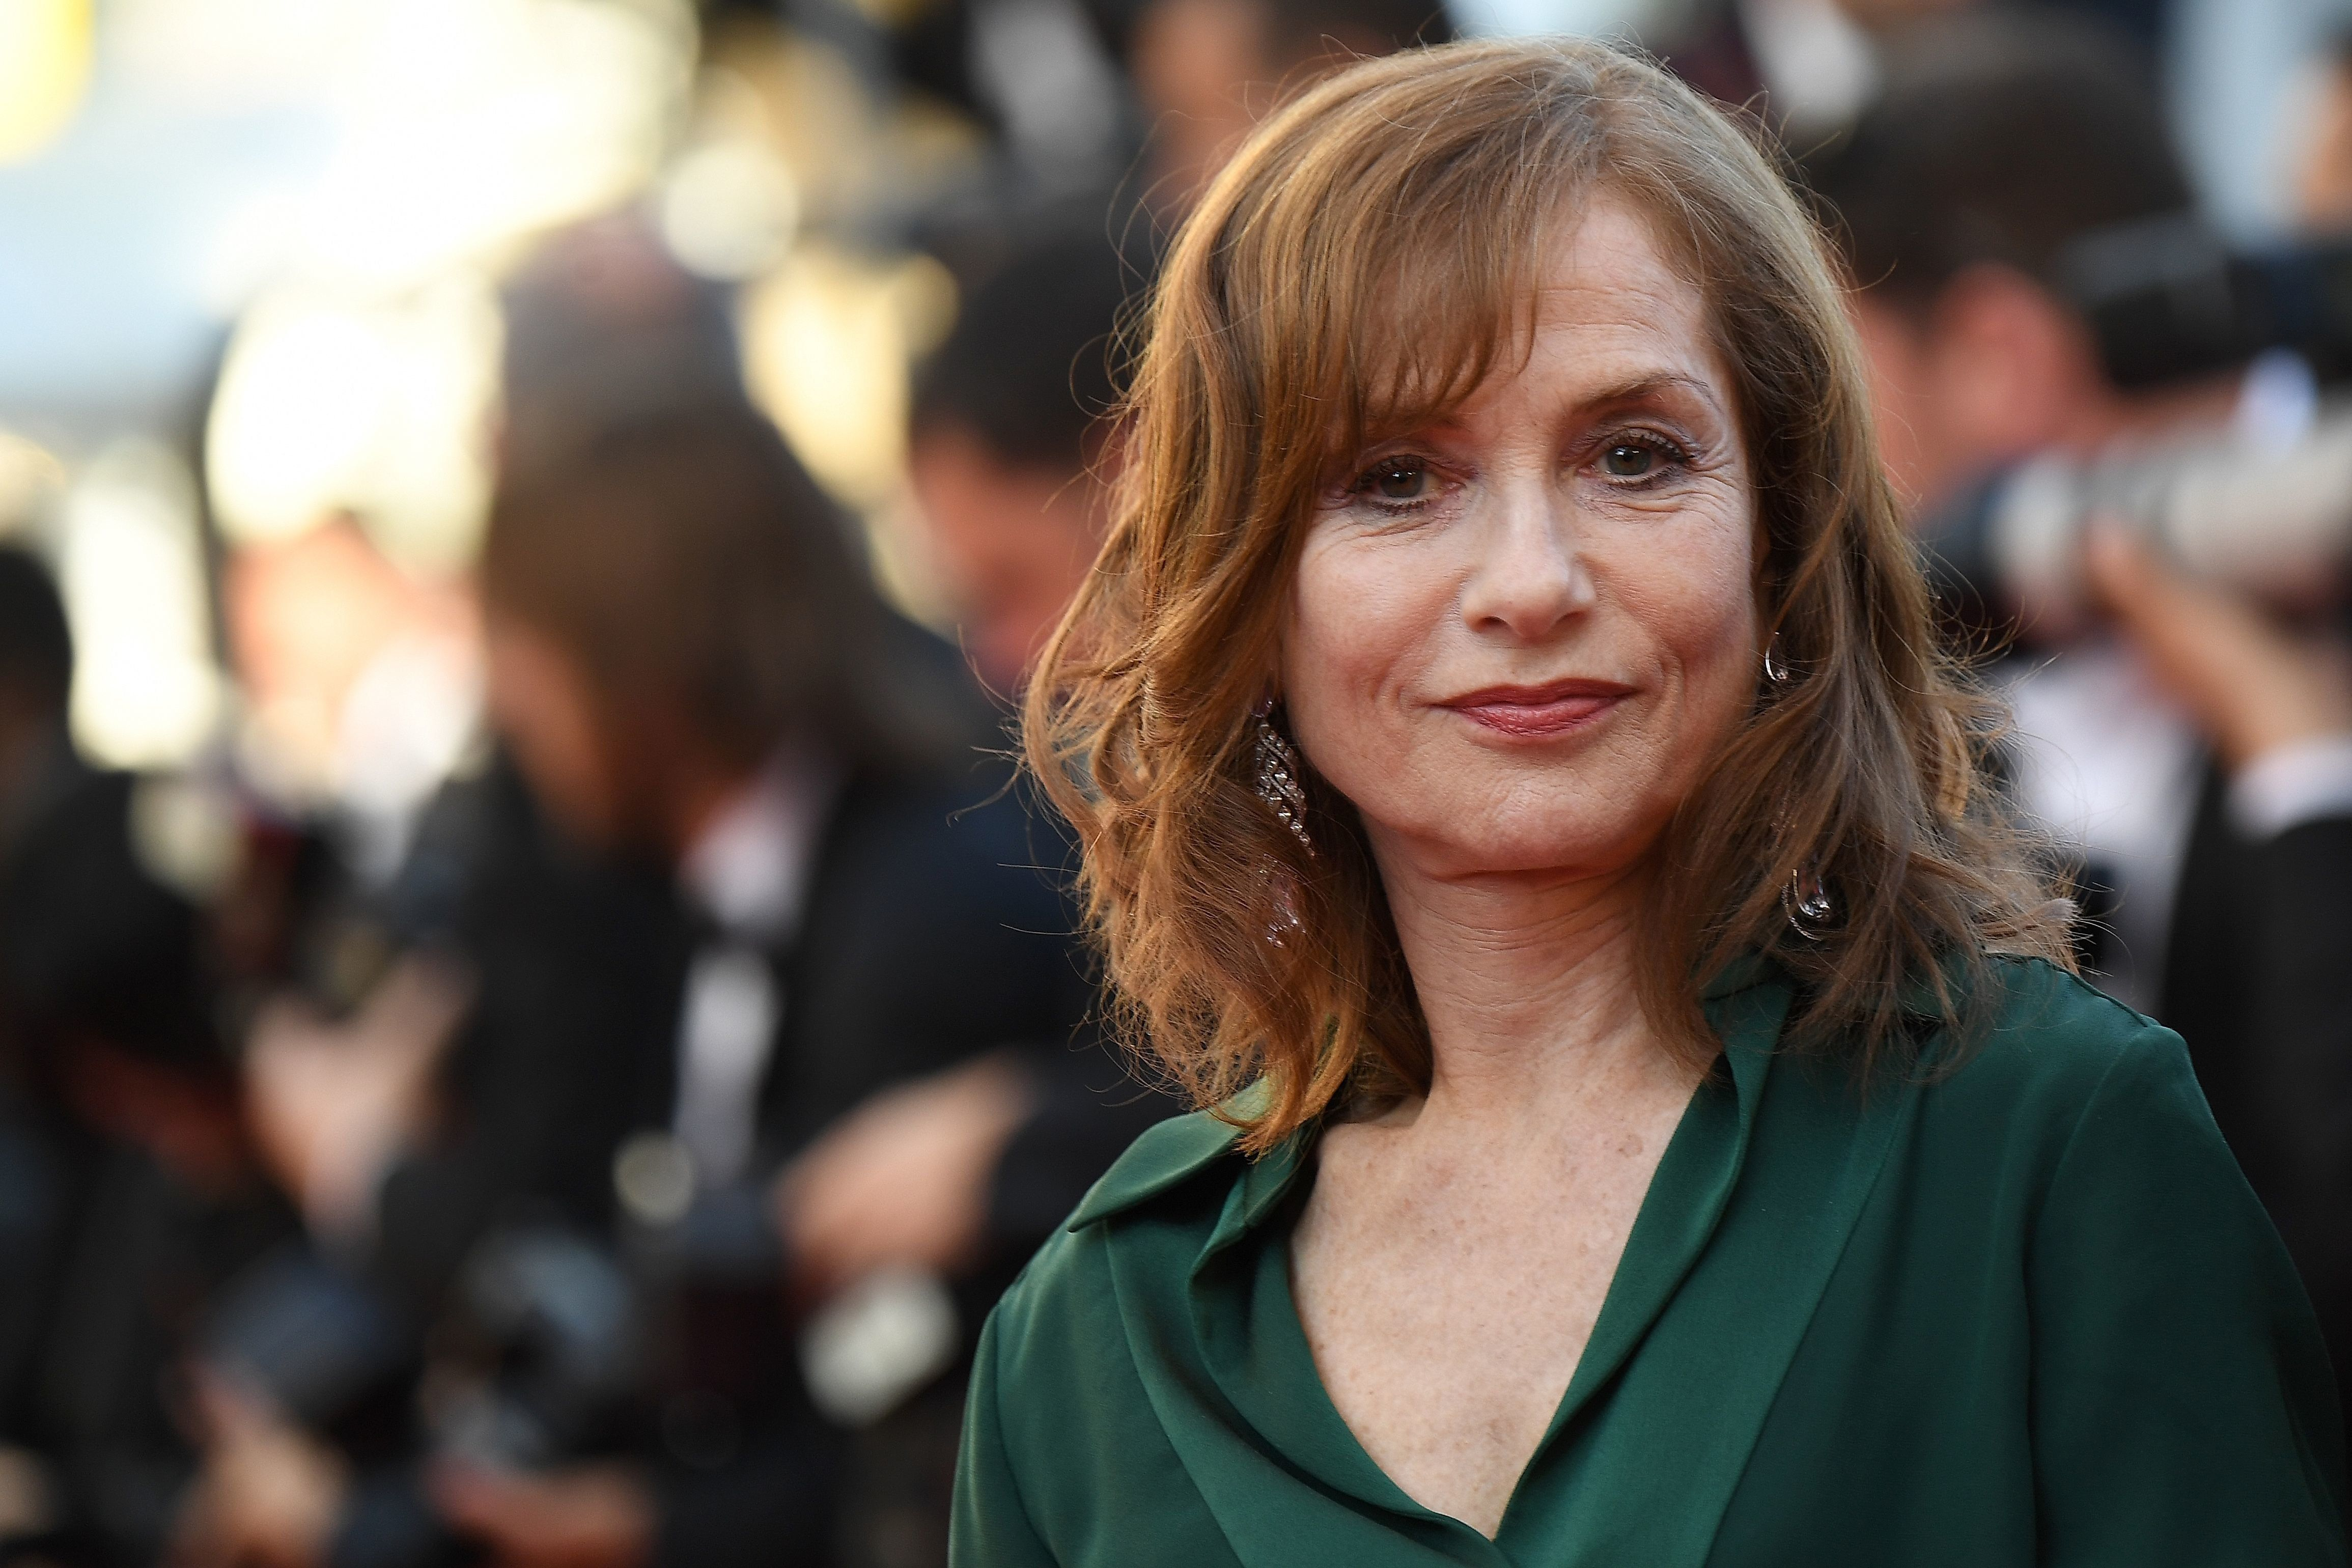 French actress Isabelle Huppert poses as she arrives on May 21, 2016 for the screening of the film 'Elle' at the 69th Cannes Film Festival in Cannes, southern France.  / AFP / ANNE-CHRISTINE POUJOULAT        (Photo credit should read ANNE-CHRISTINE POUJOULAT/AFP/Getty Images)